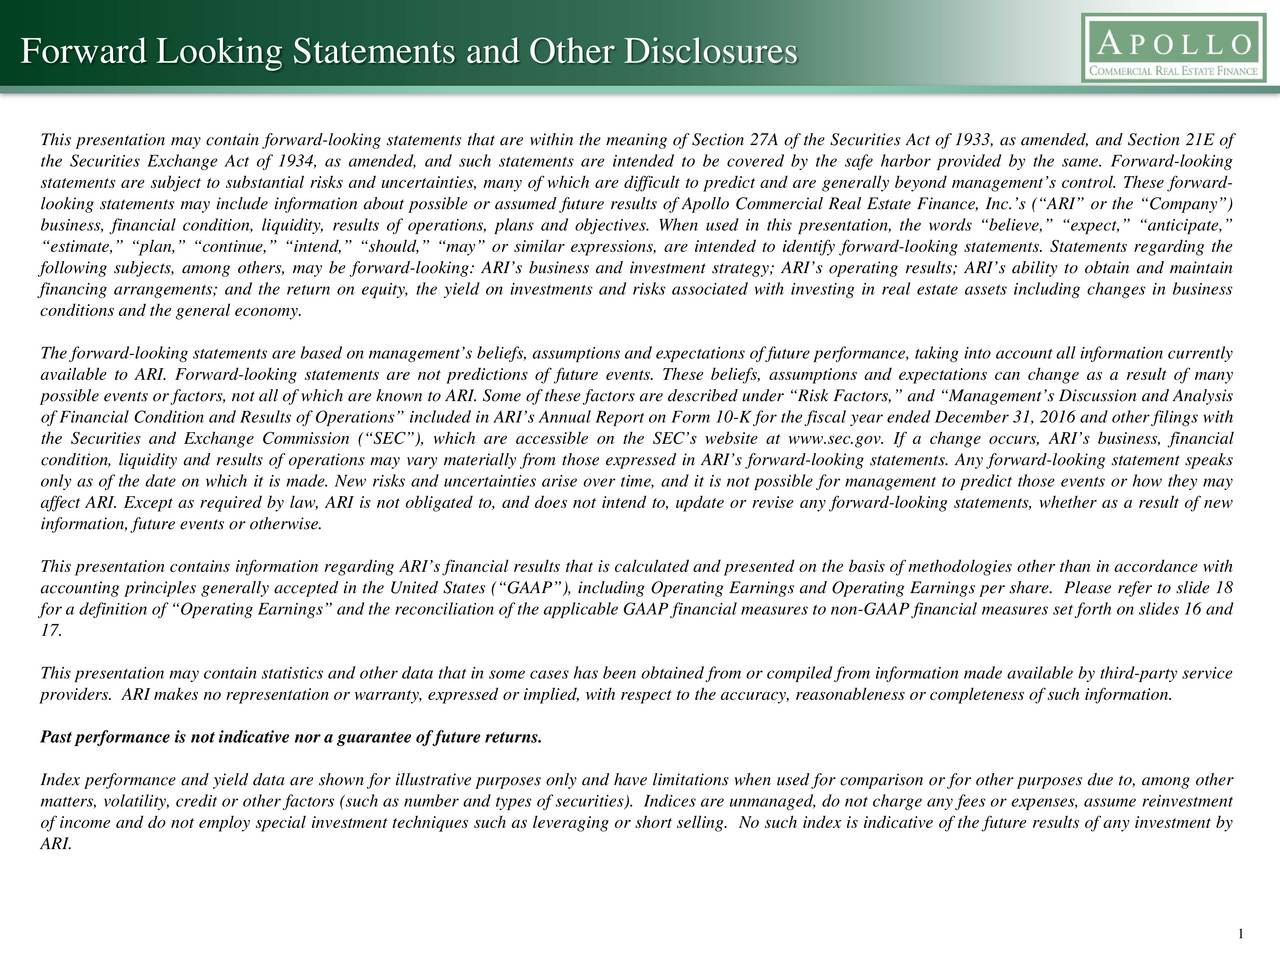 This presentation may contain forward-looking statements that are within the meaning of Section 27A of the Securities Act of 1933, as amended, and Section 21E of the Securities Exchange Act of 1934, as amended, and such statements are intended to be covered by the safe harbor provided by the same. Forward-looking statements are subject to substantial risks and uncertainties, many of which are difficult to predict and are generally beyond managements control. These forward- looking statements may include information about possible or assumed future results of Apollo Commercial Real Estate Finance, Inc.s (ARI or the Company) business, financial condition, liquidity, results of operations, plans and objectives. When used in this presentation, the words believe, expect, anticipate, estimate, plan, continue, intend, should, may or similar expressions, are intended to identify forward-looking statements. Statements regarding the following subjects, among others, may be forward-looking: ARIs business and investment strategy; ARIs operating results; ARIs ability to obtain and maintain financing arrangements; and the return on equity, the yield on investments and risks associated with investing in real estate assets including changes in business conditions and the general economy. The forward-looking statements are based on managements beliefs, assumptions and expectations of future performance, taking into account all information currently available to ARI. Forward-looking statements are not predictions of future events. These beliefs, assumptions and expectations can change as a result of many possible events or factors, not all of which are known to ARI. Some of these factors are described under Risk Factors, and Managements Discussion and Analysis of Financial Condition and Results of Operations included in ARIs Annual Report on Form 10-K for the fiscal year ended December 31, 2016 and other filings with the Securities and Exchange Commission (SEC), which are accessible 